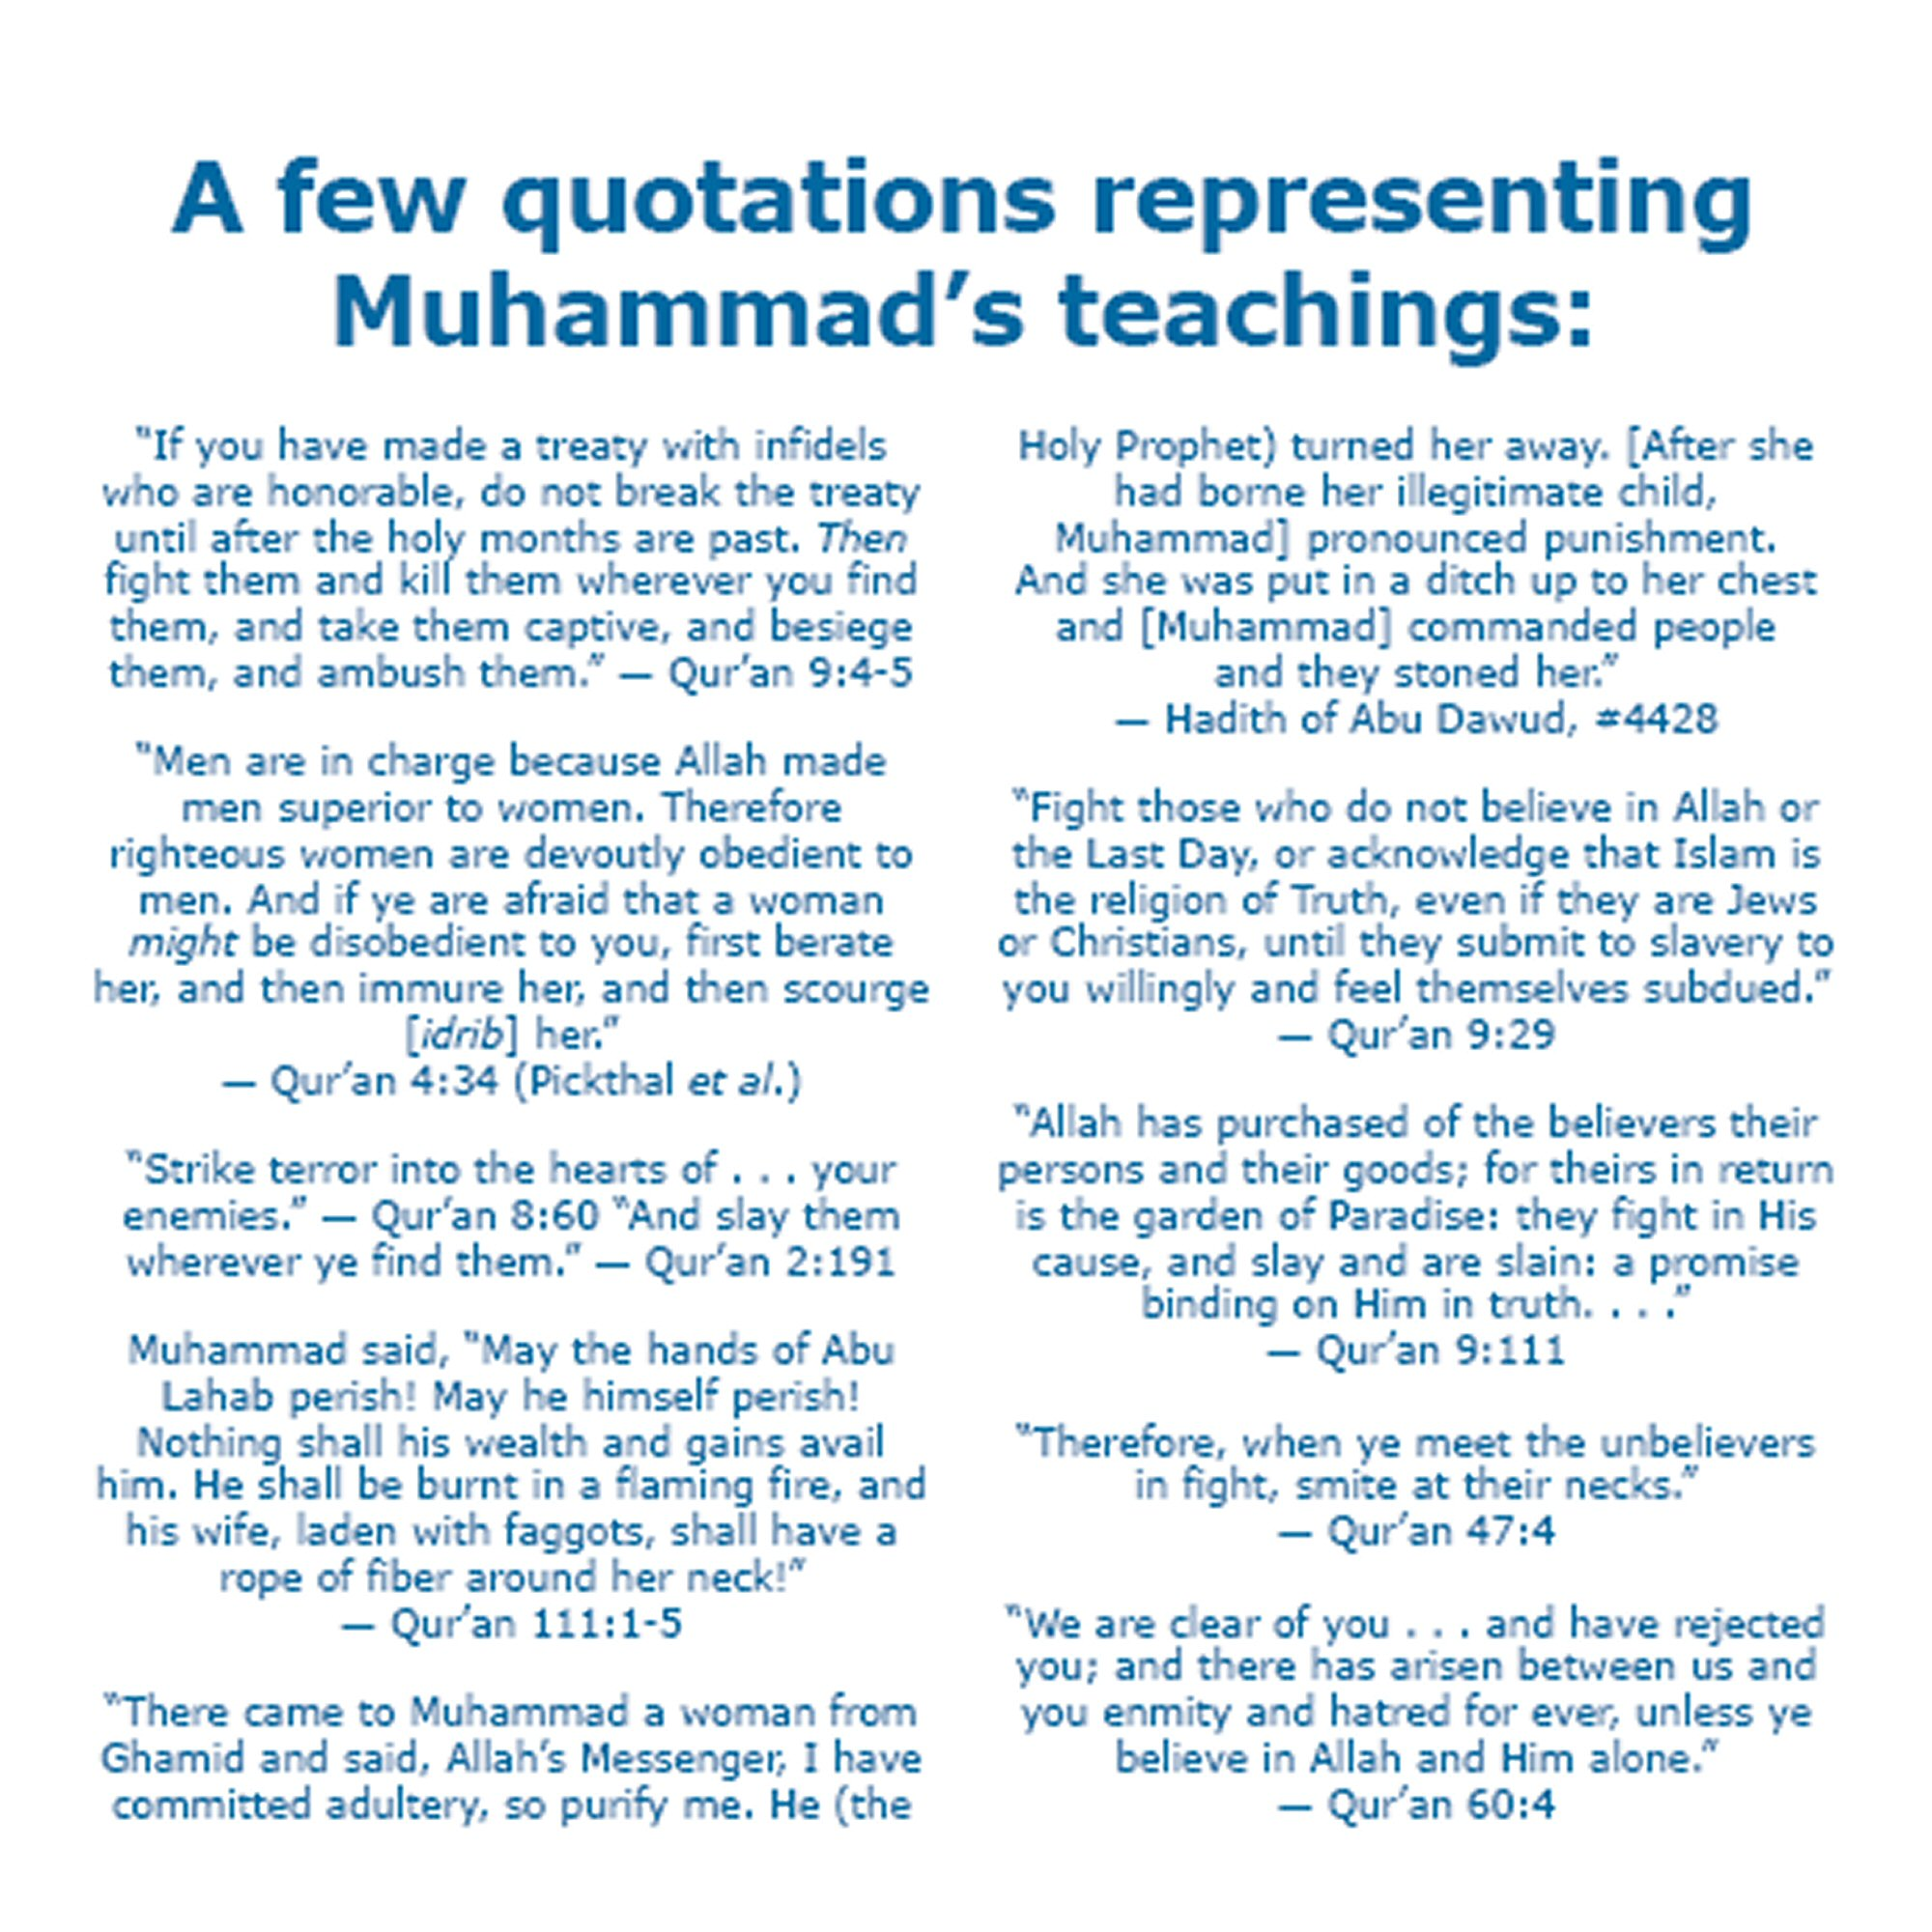 Quran teachings on homosexuality in christianity